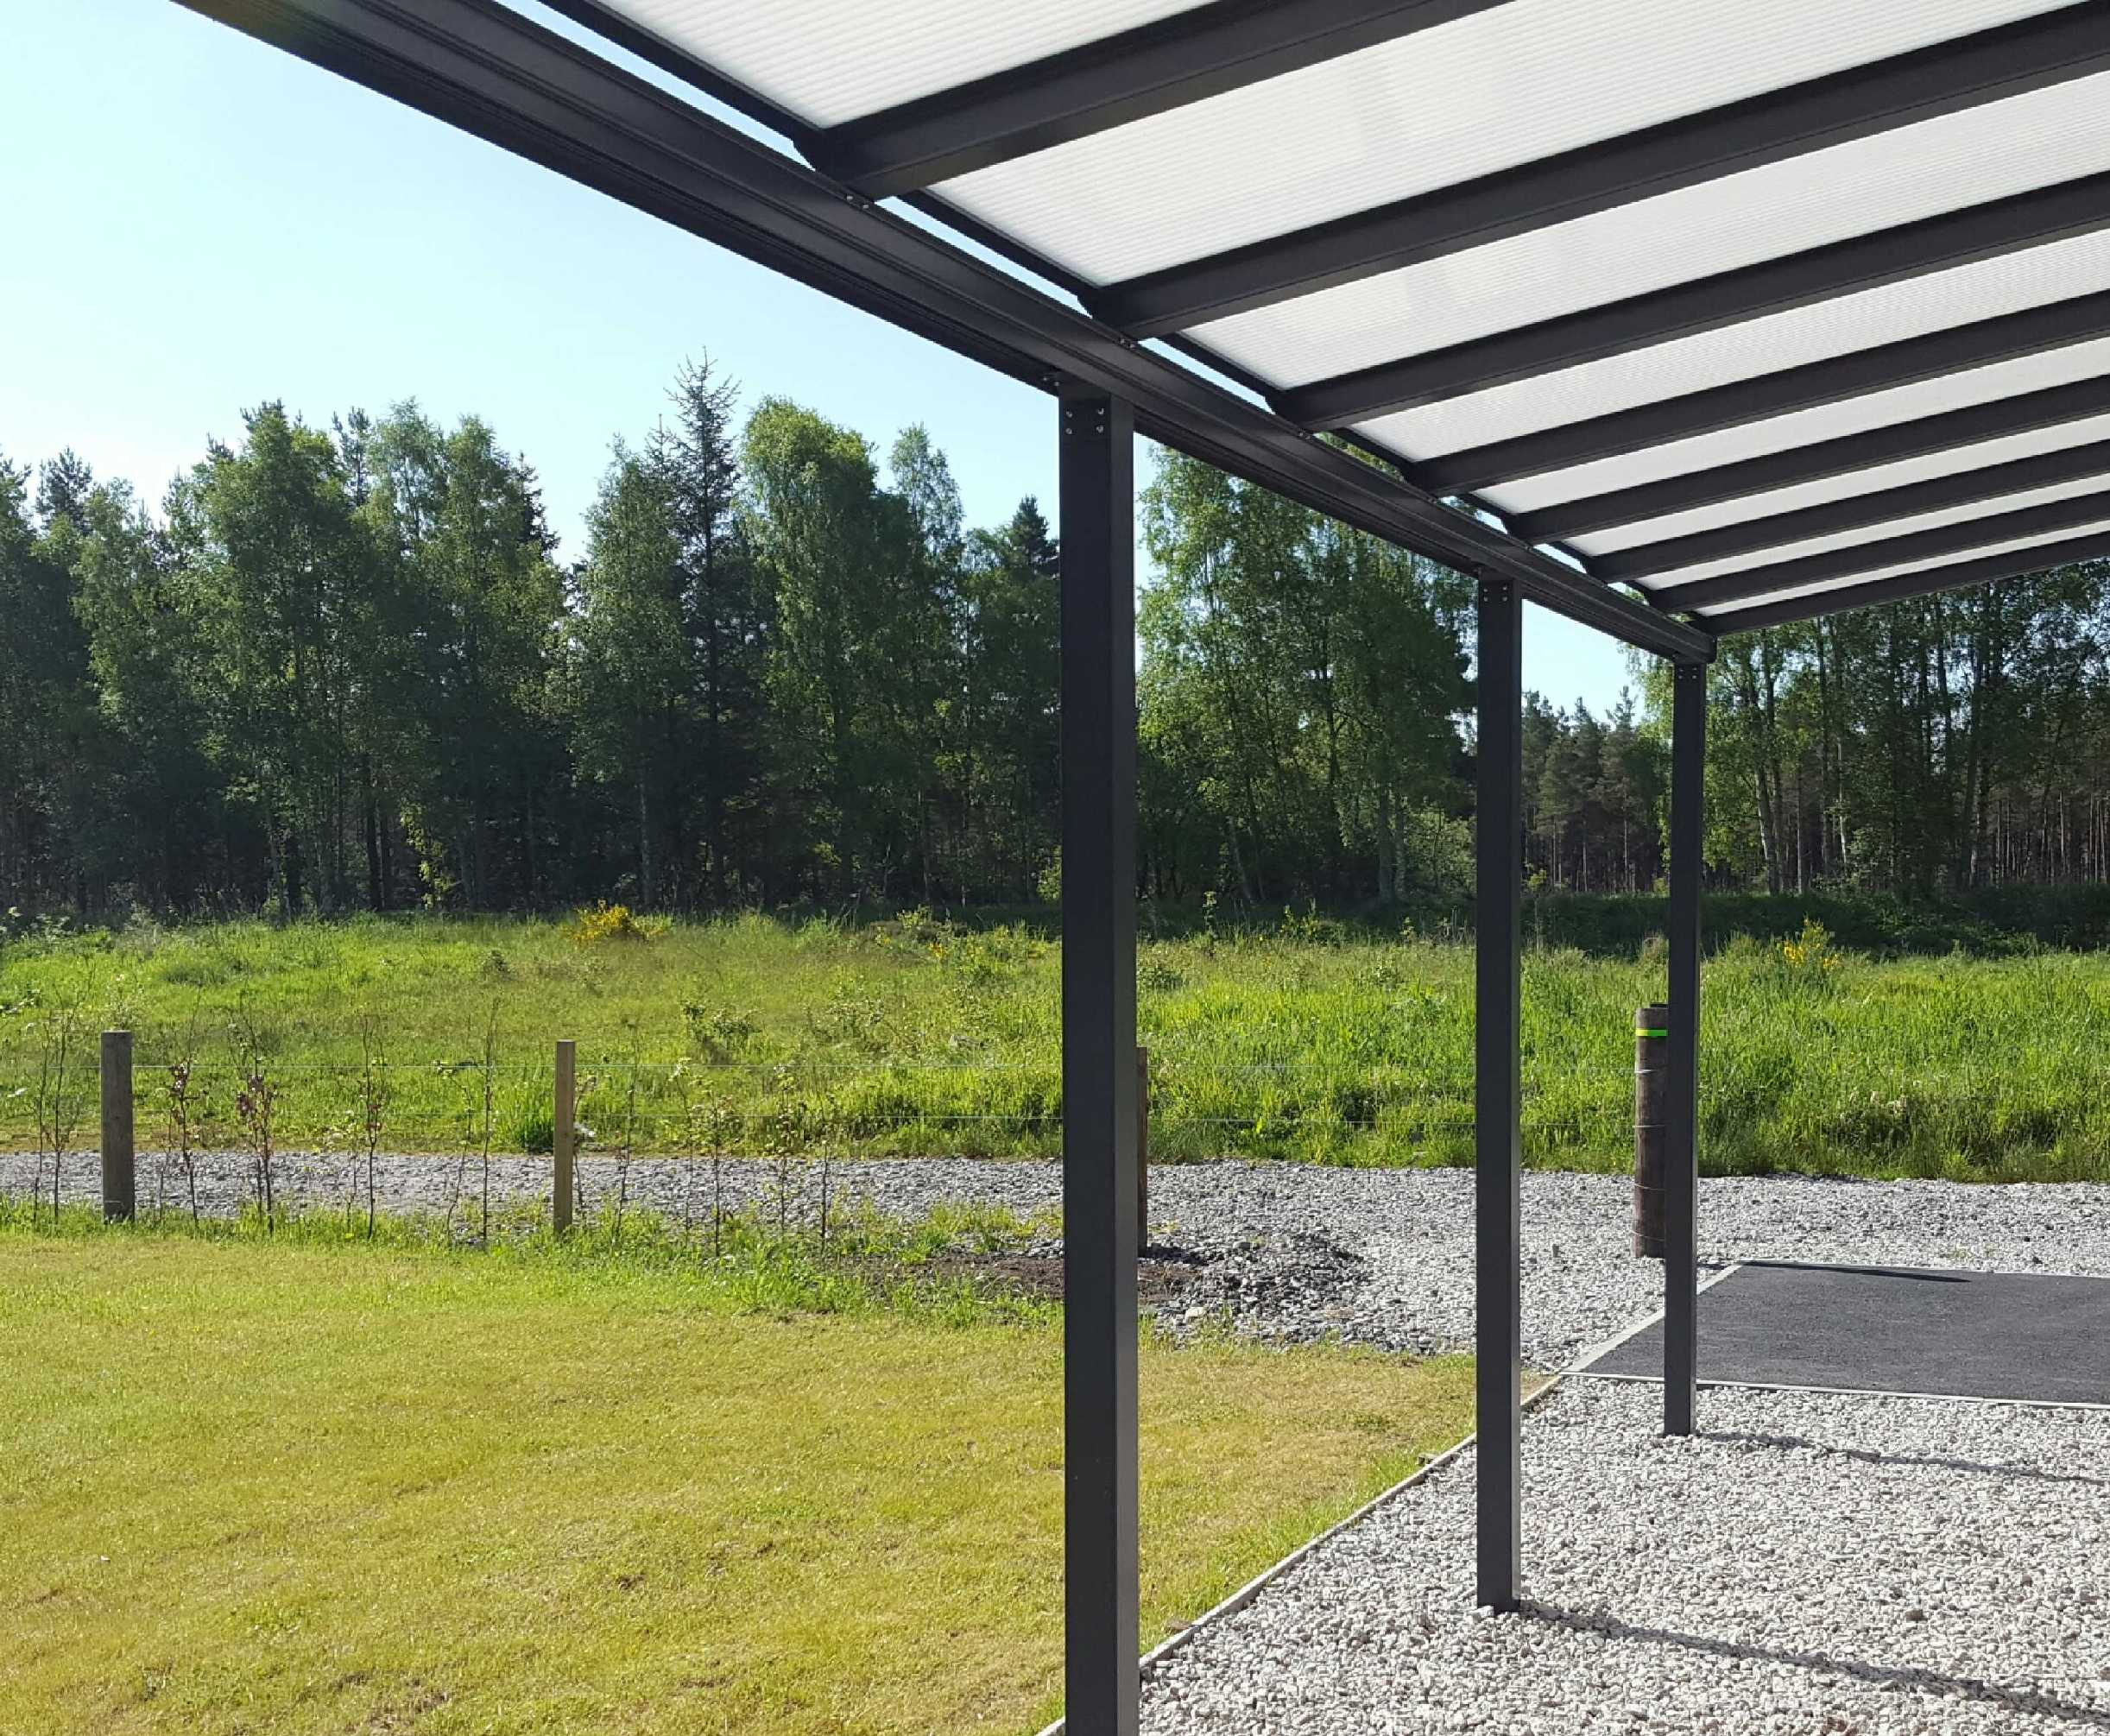 Omega Smart Lean-To Canopy, Anthracite Grey, 16mm Polycarbonate Glazing - 10.6m (W) x 2.5m (P), (5) Supporting Posts